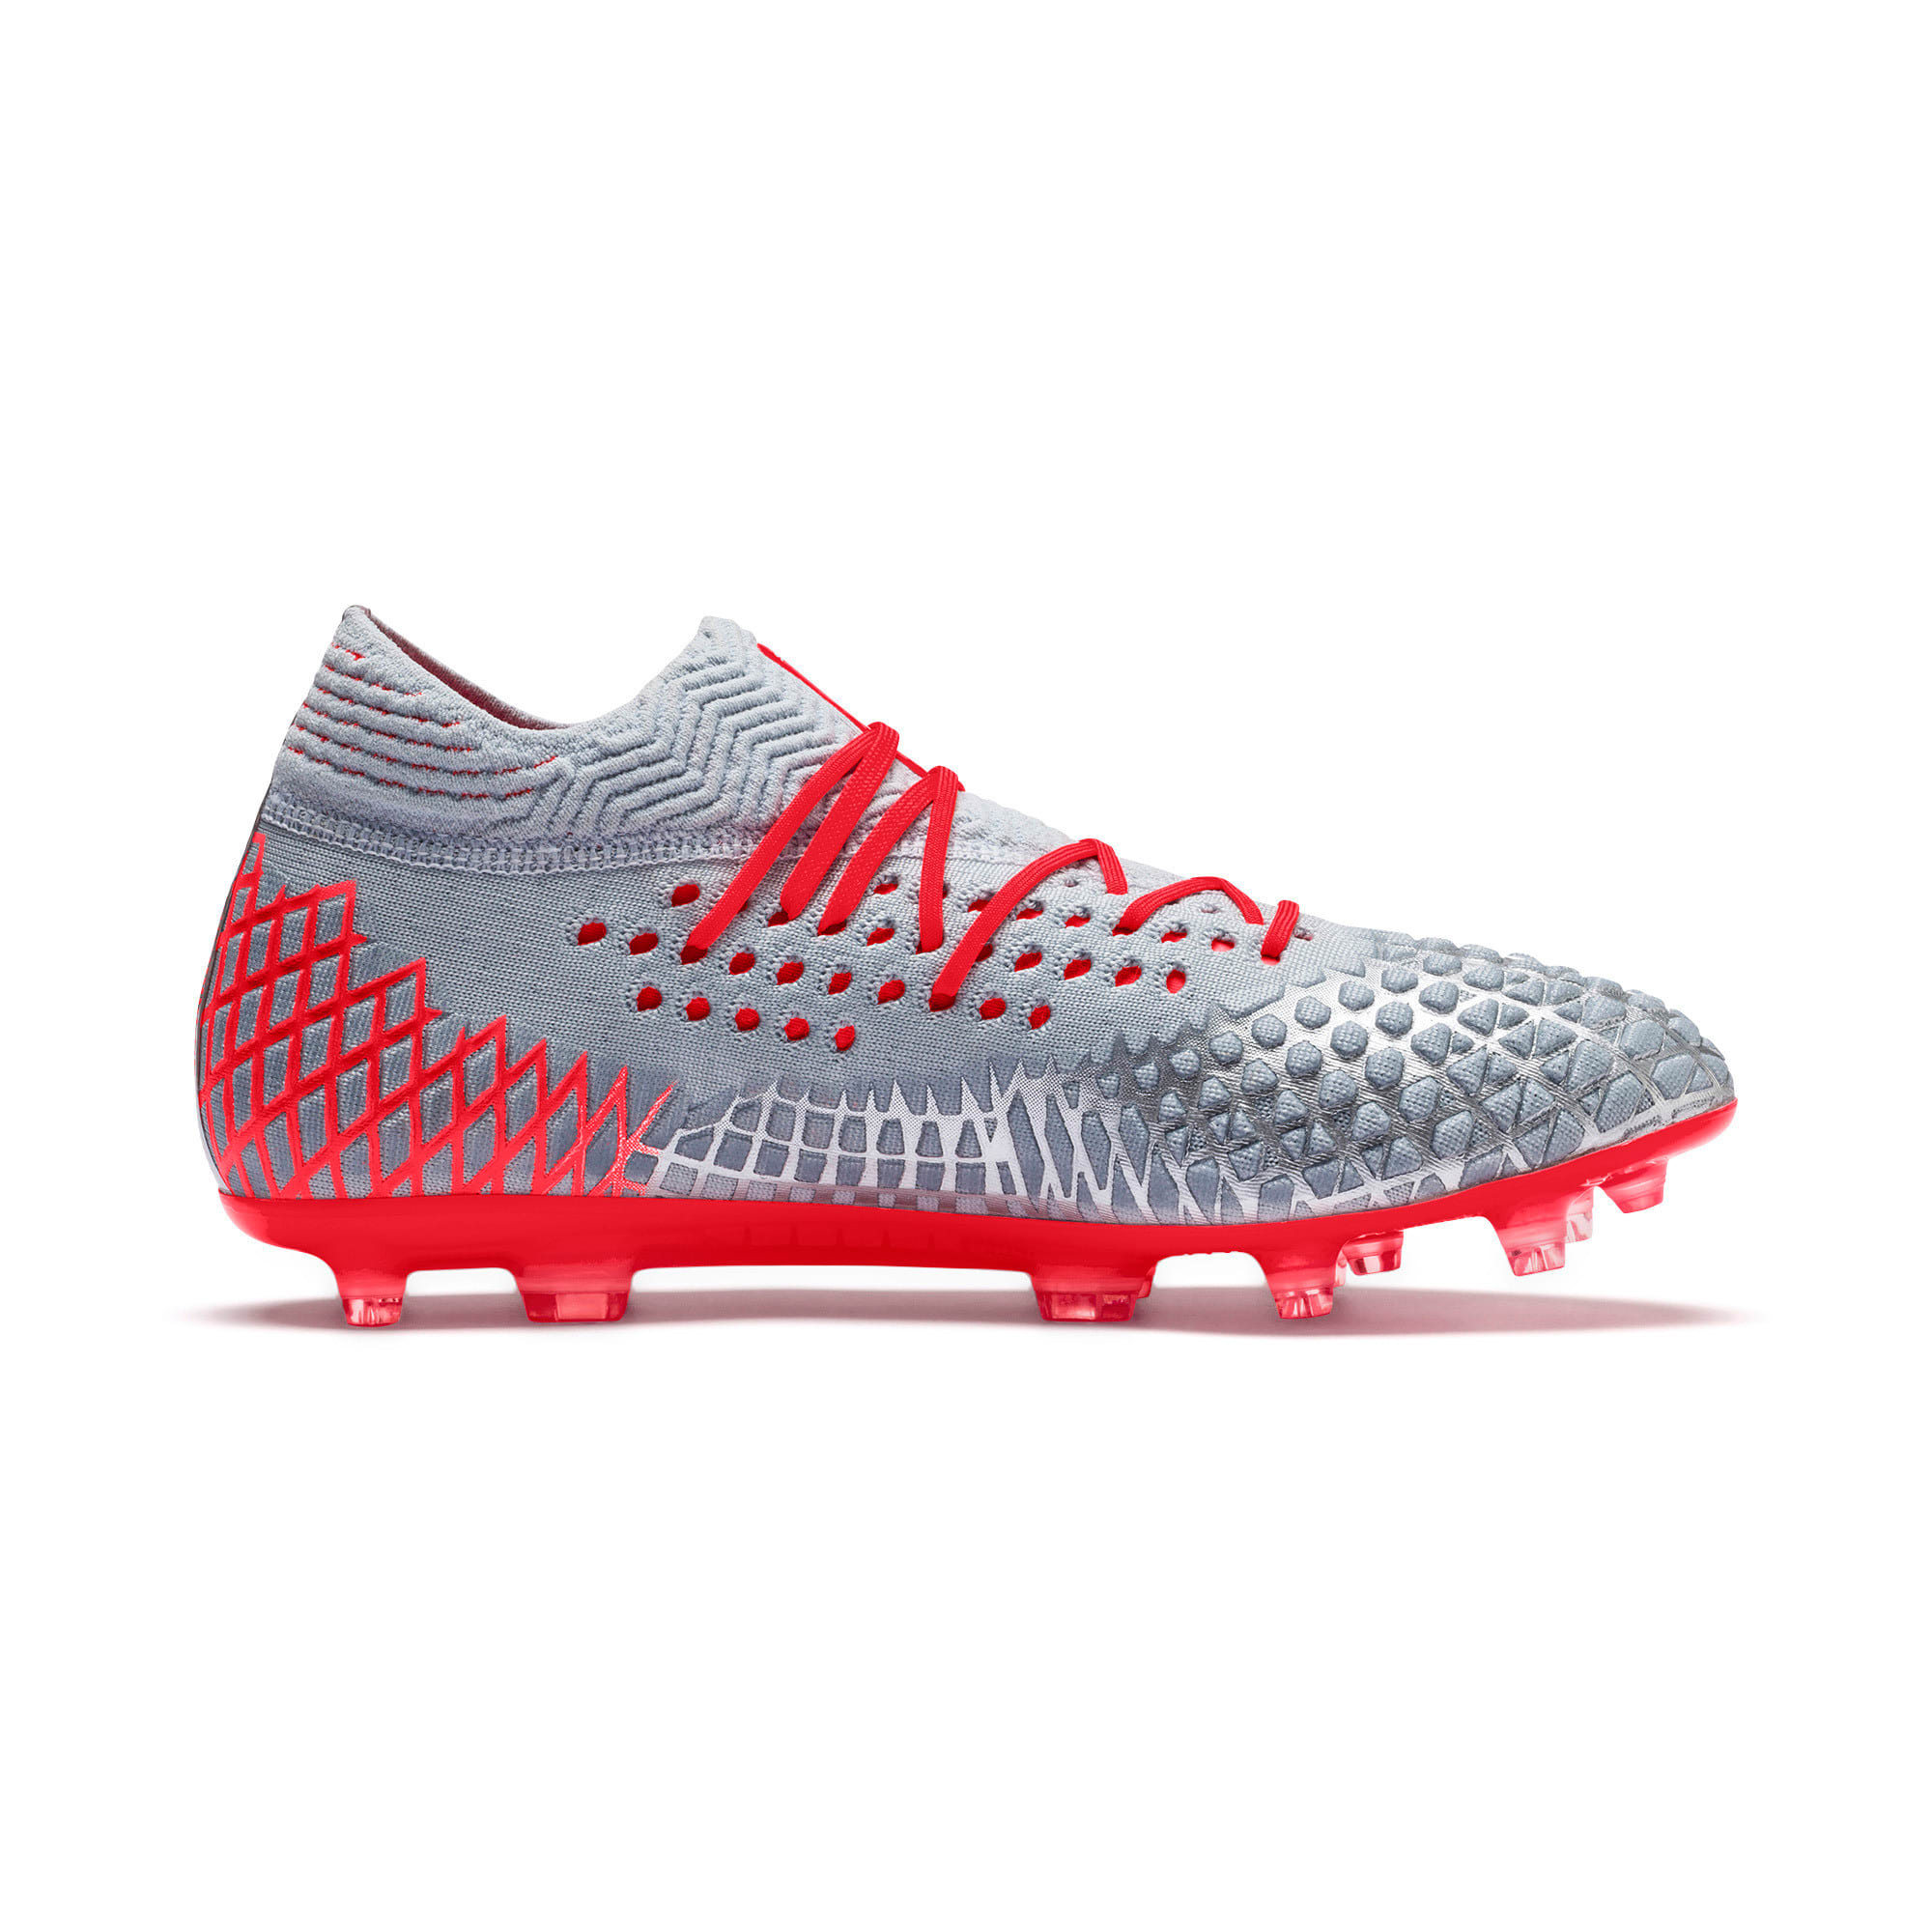 Thumbnail 7 of FUTURE 4.1 NETFIT FG/AG Men's Football Boots, Blue-Nrgy Red-High Risk Red, medium-IND